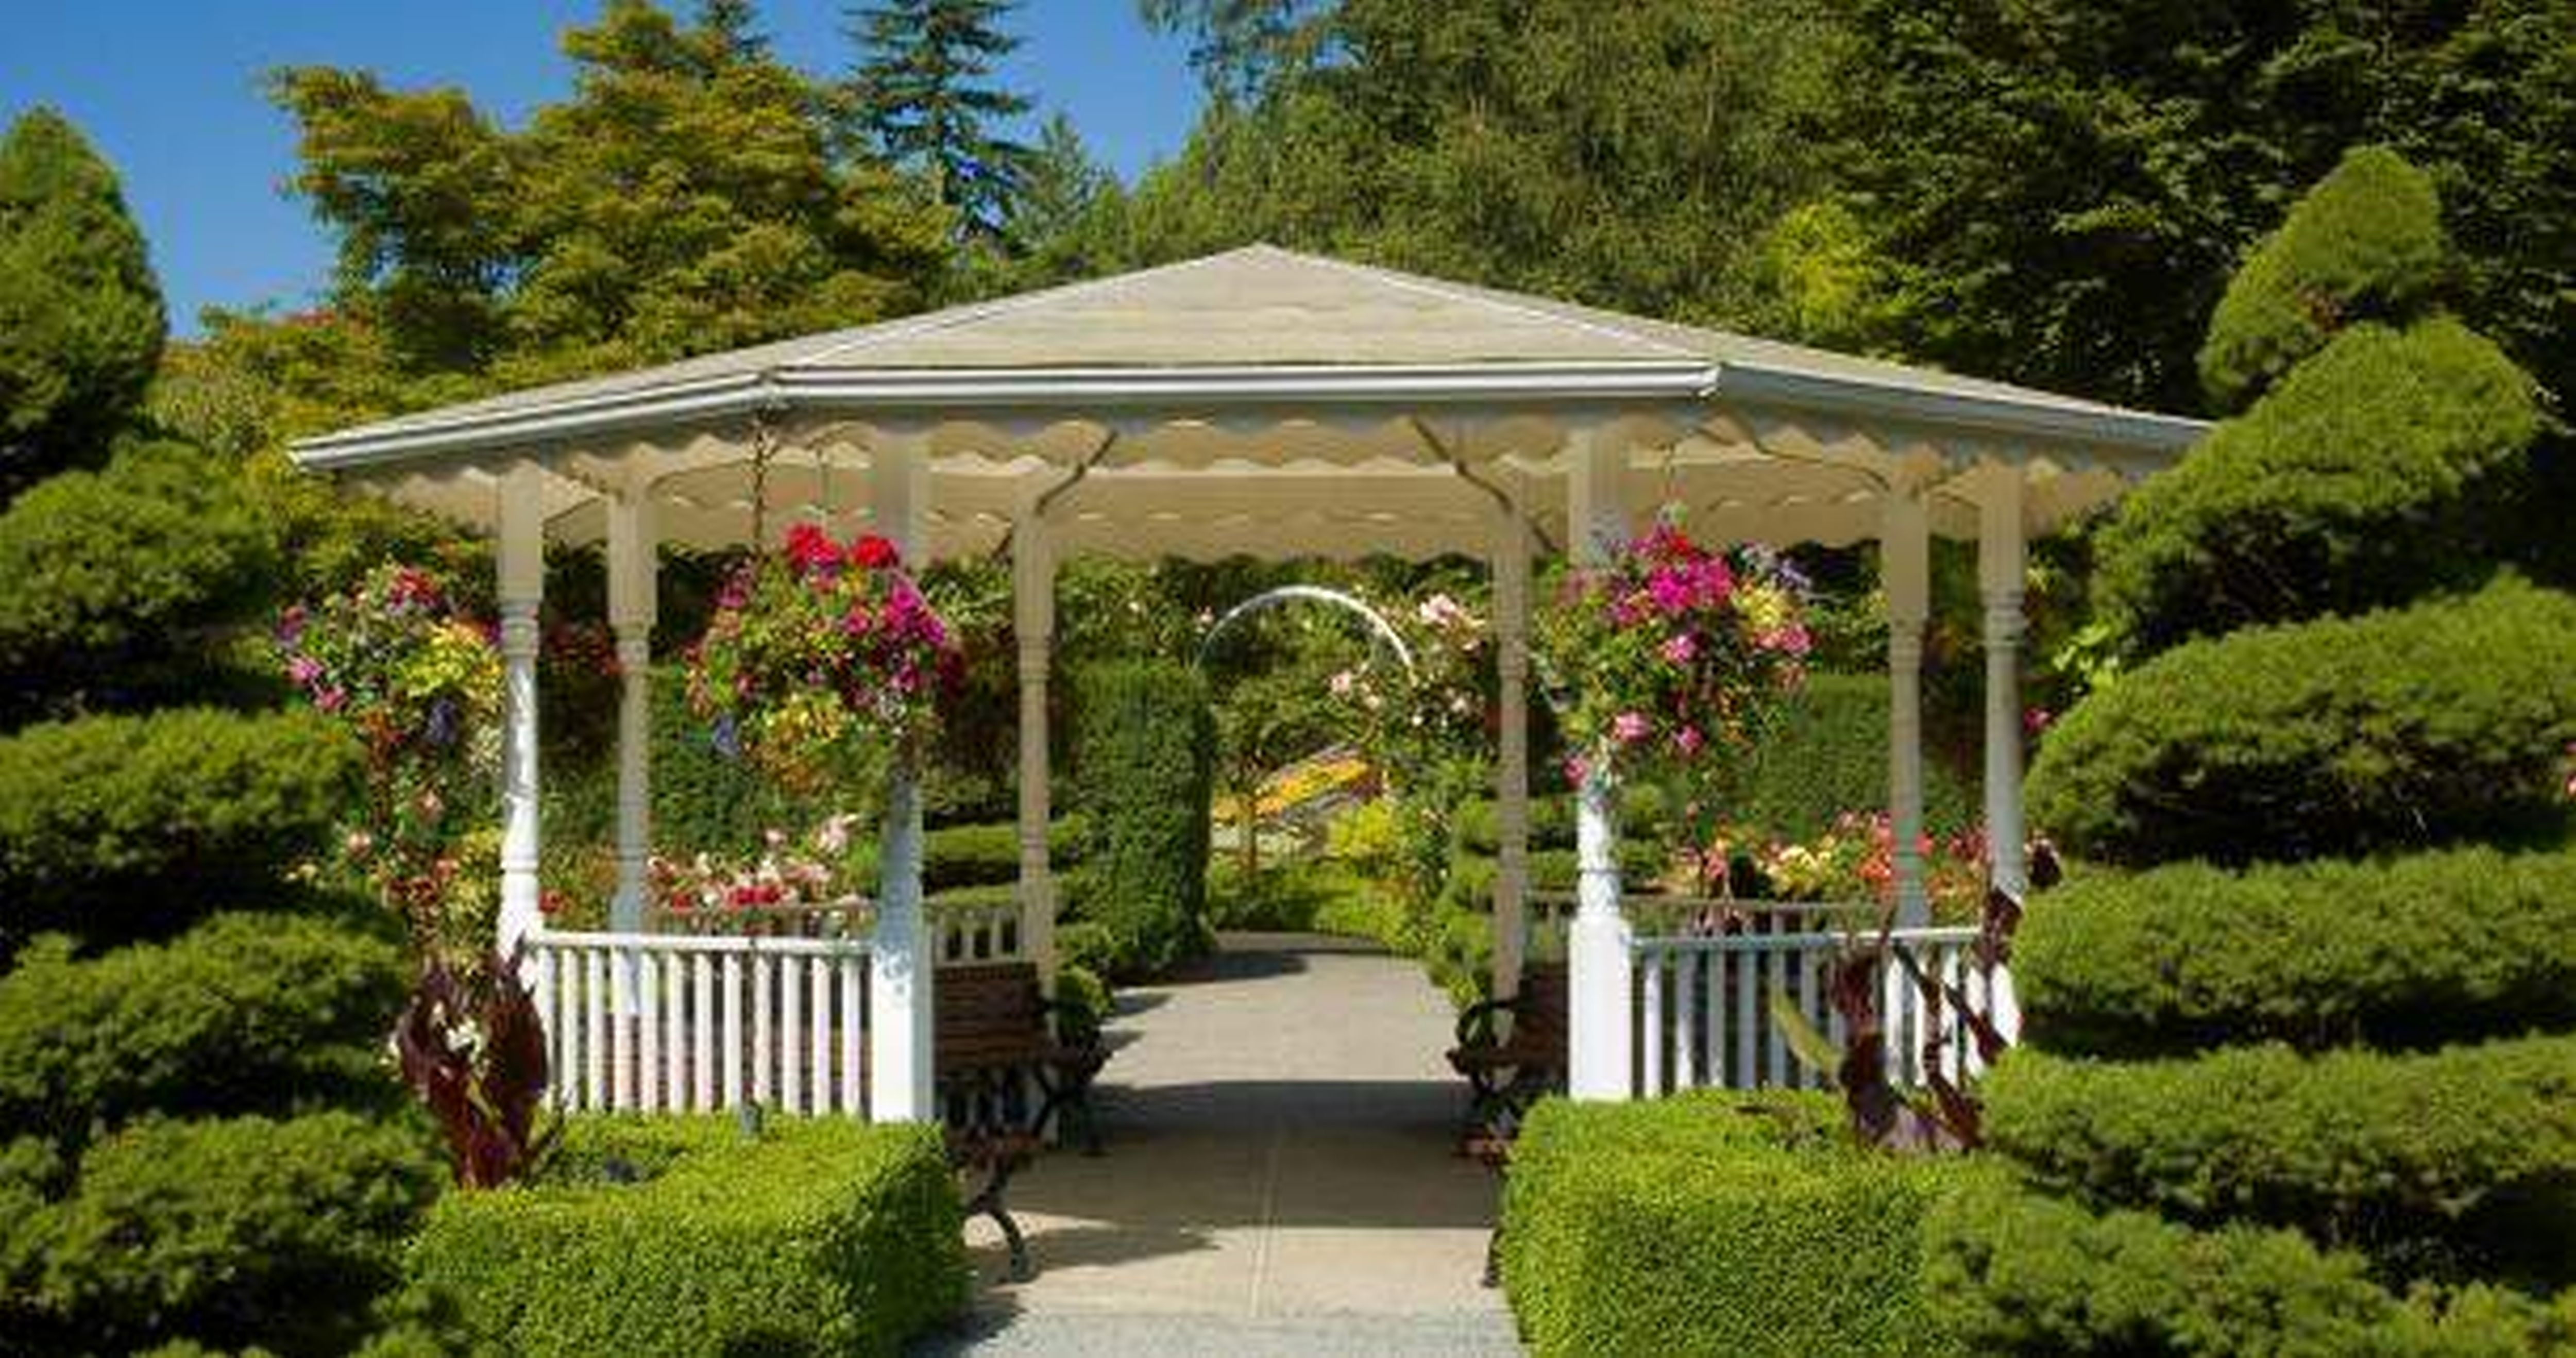 House Luxury Design Landscape Newest Backyard Expressions Gazebo intended for Backyard Expressions Garden Deluxe Pergola